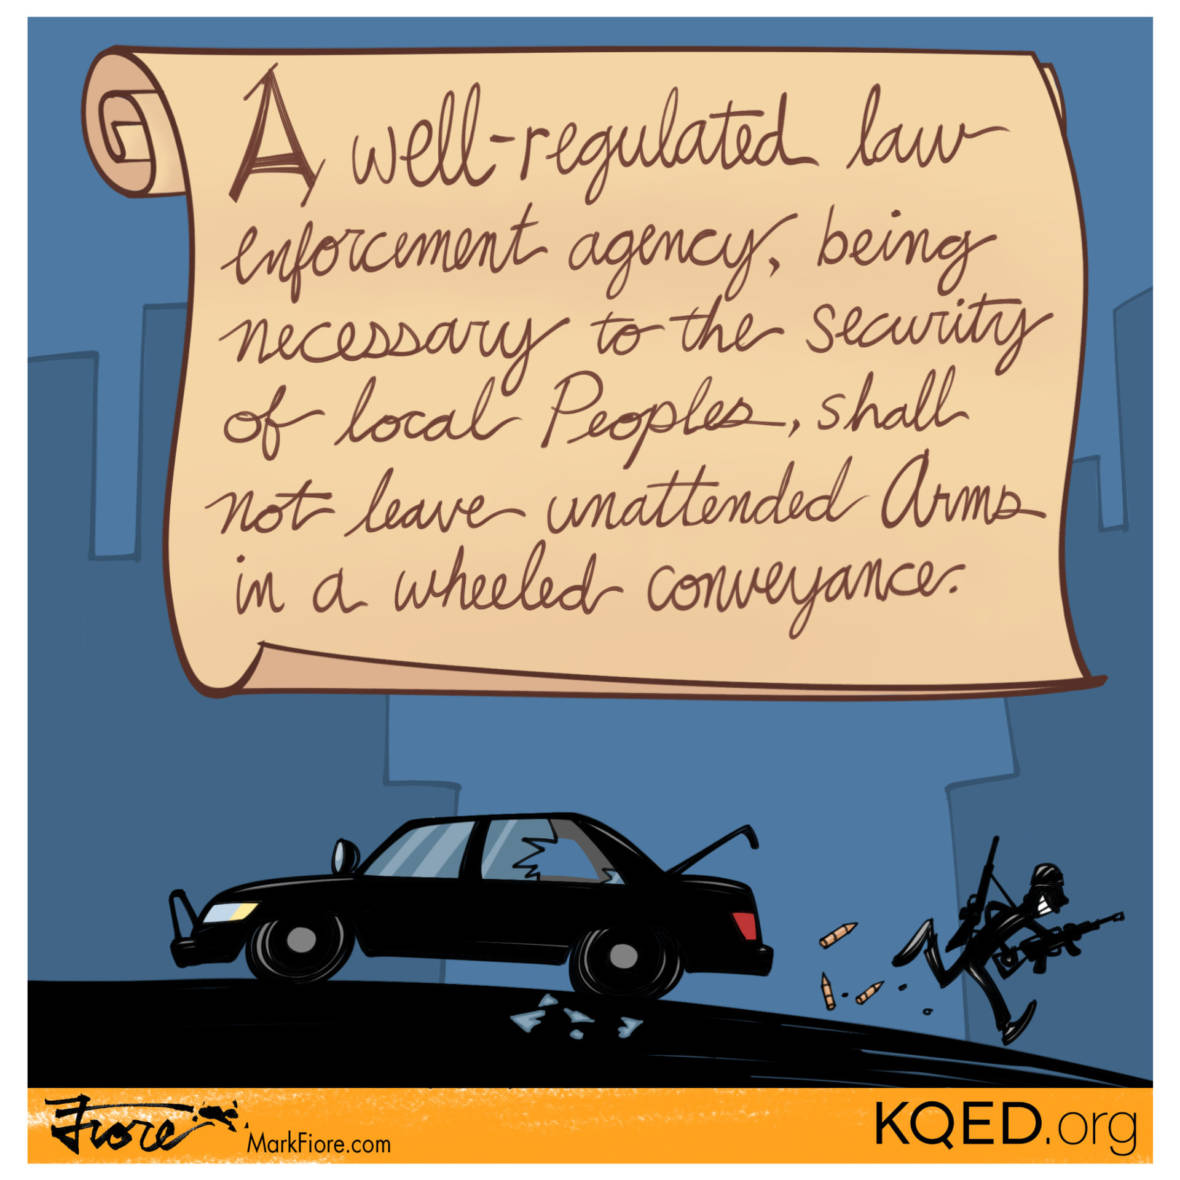 A Bay Area Second Amendment Addendum